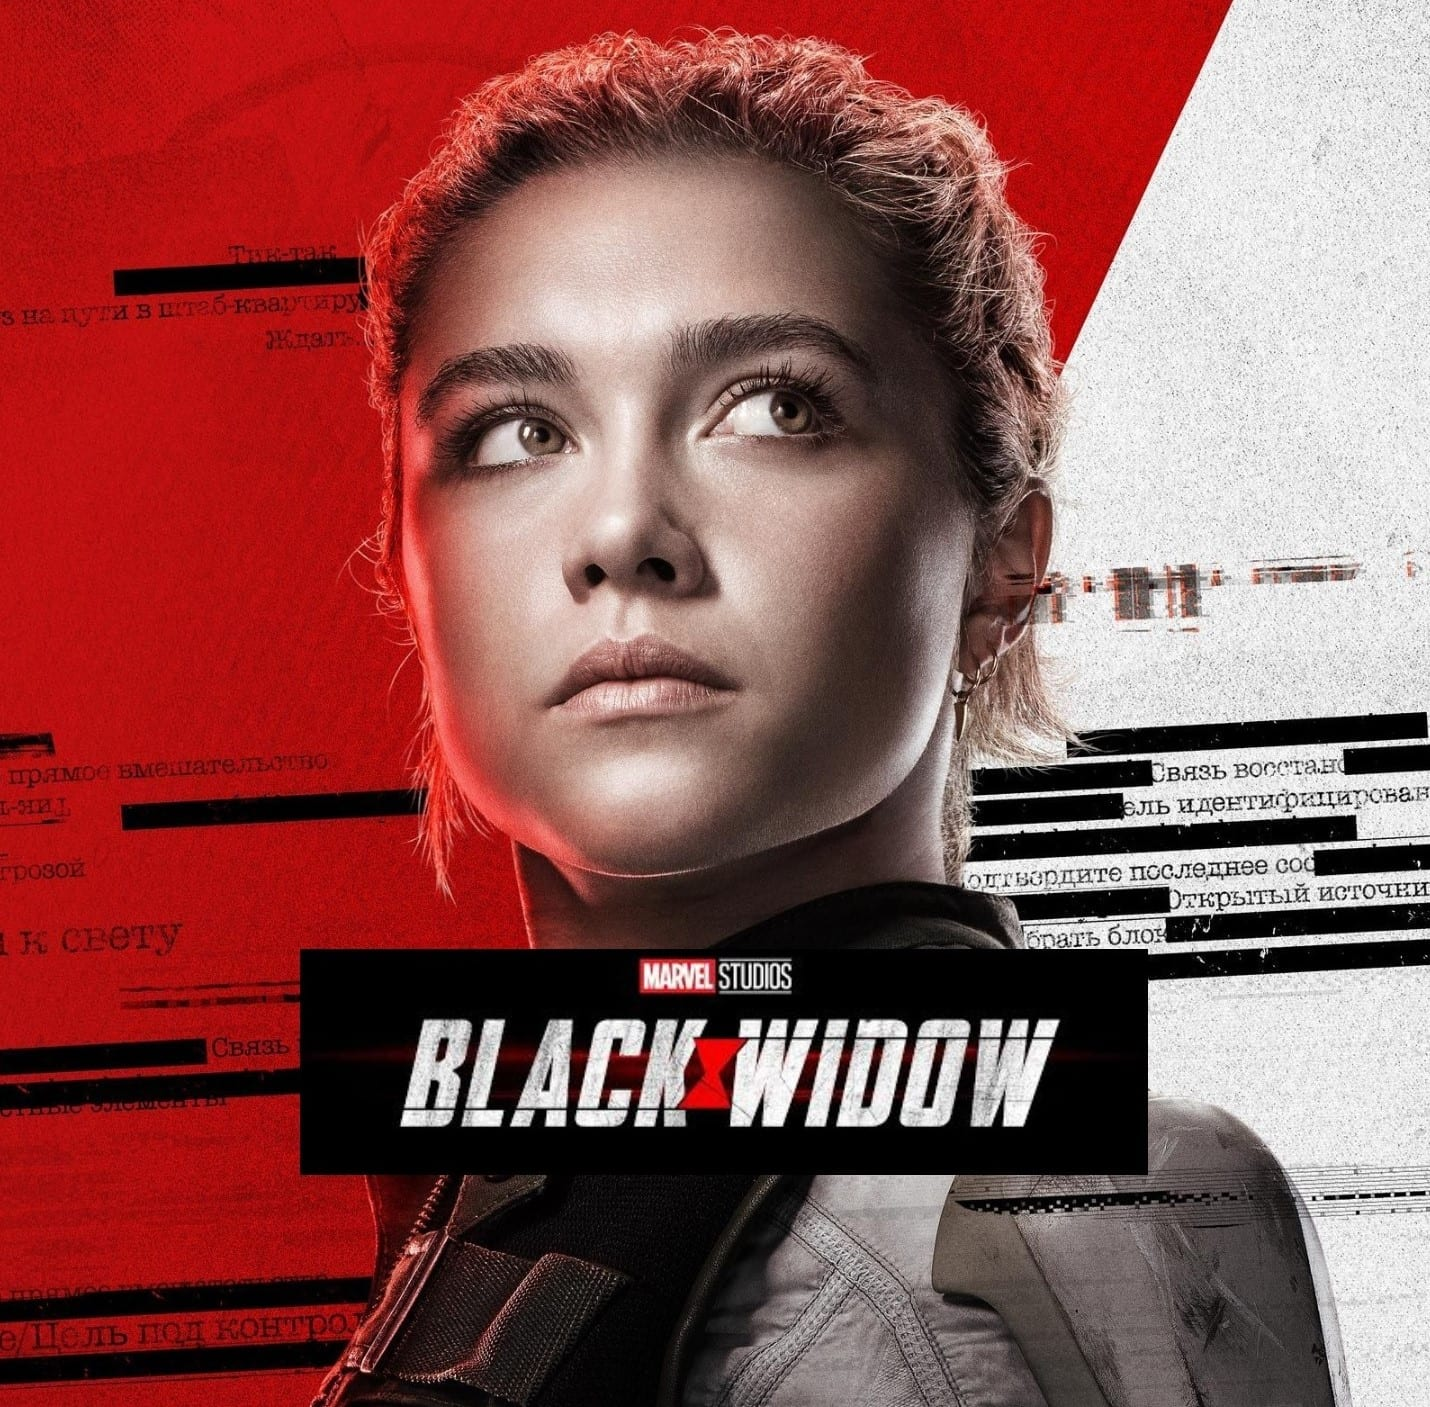 Black Widow director confirms the film will 'hand the baton' to Florence Pugh's character